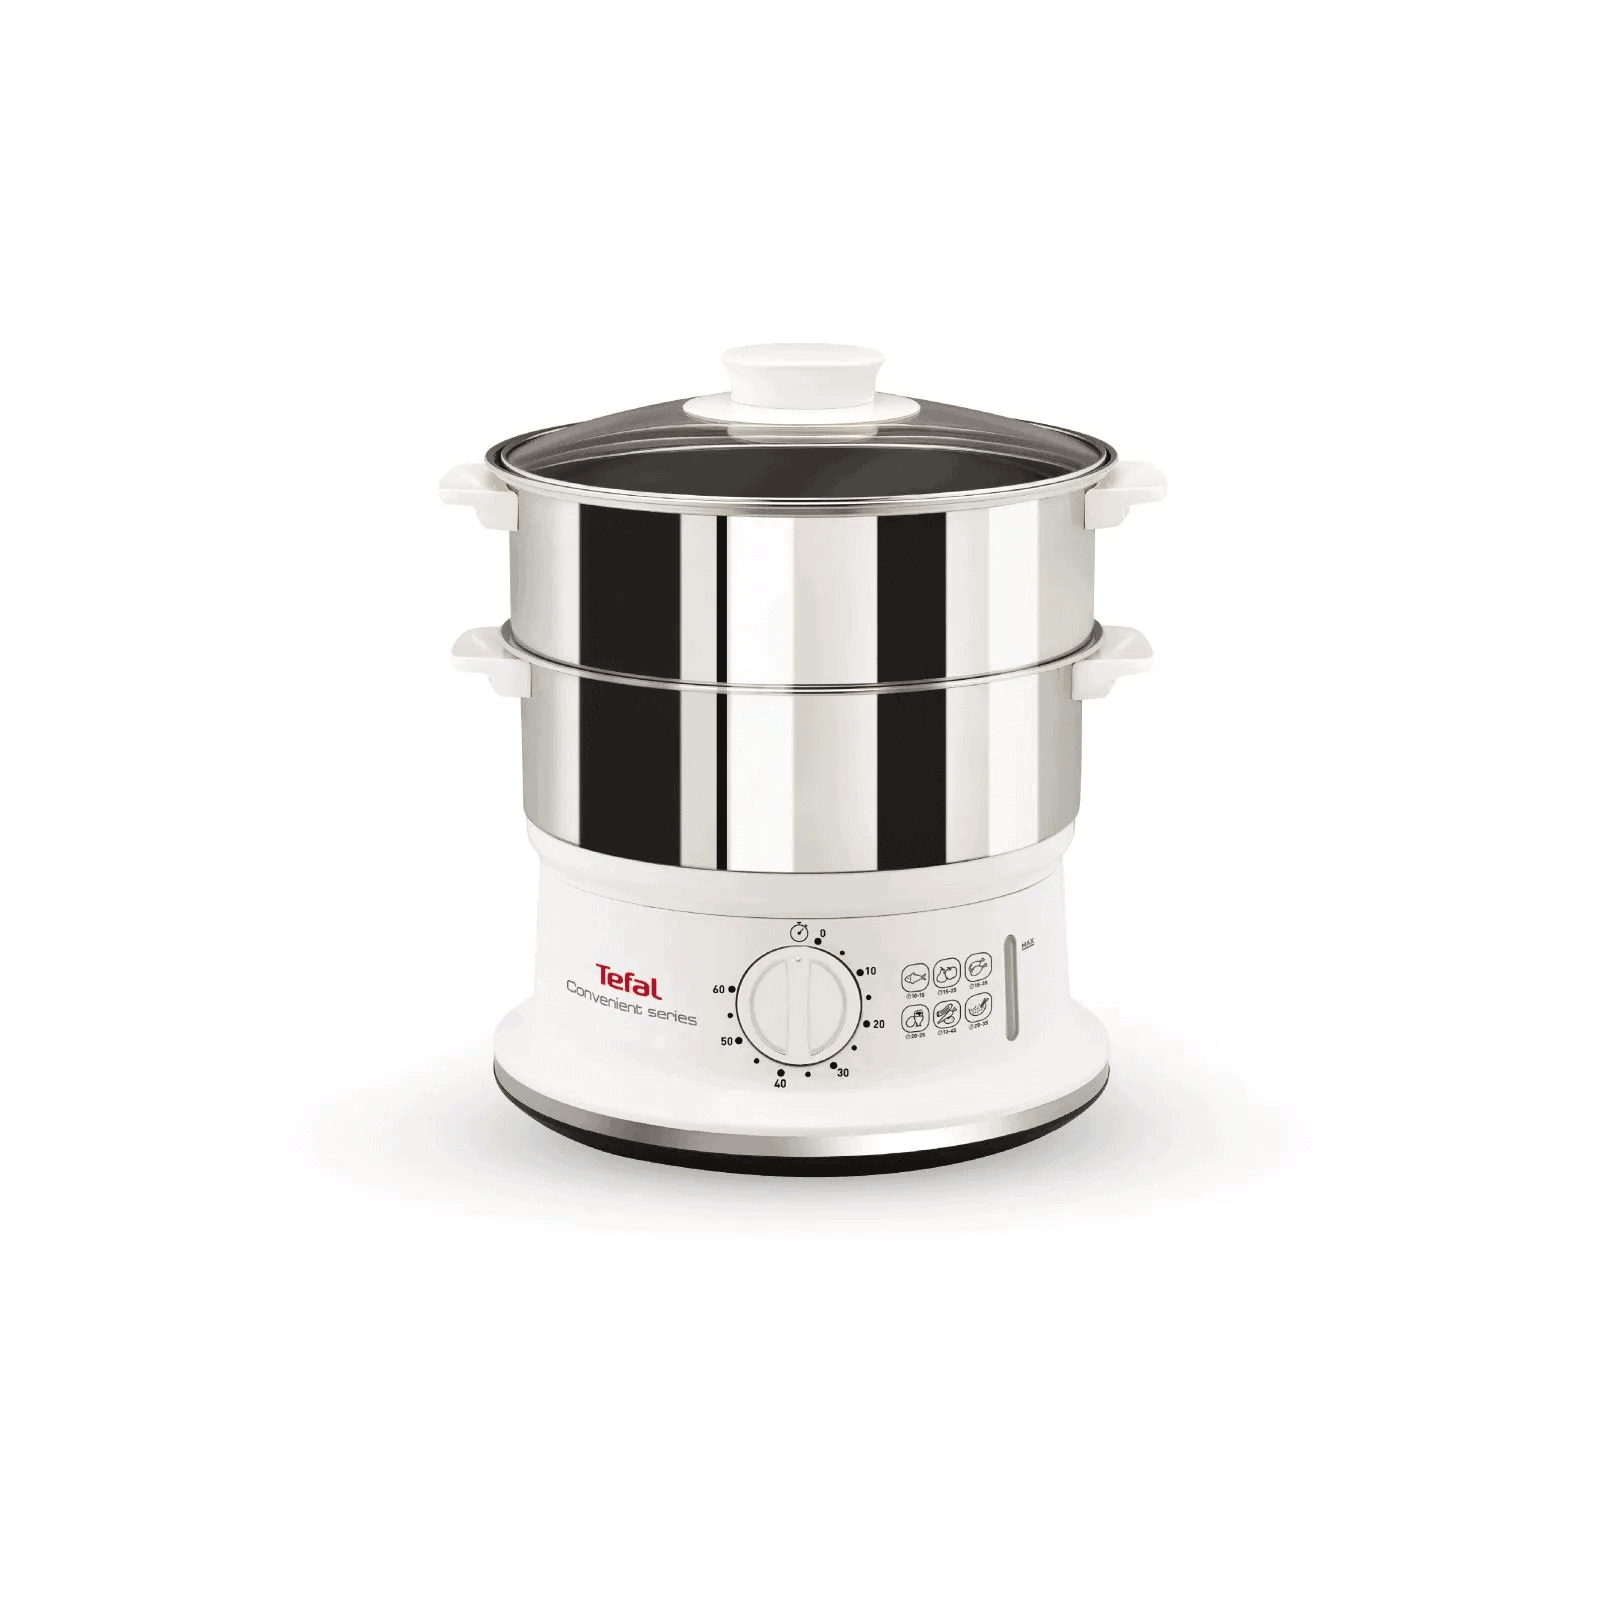 Find Best Food Steamer in Singapore at affordable prices